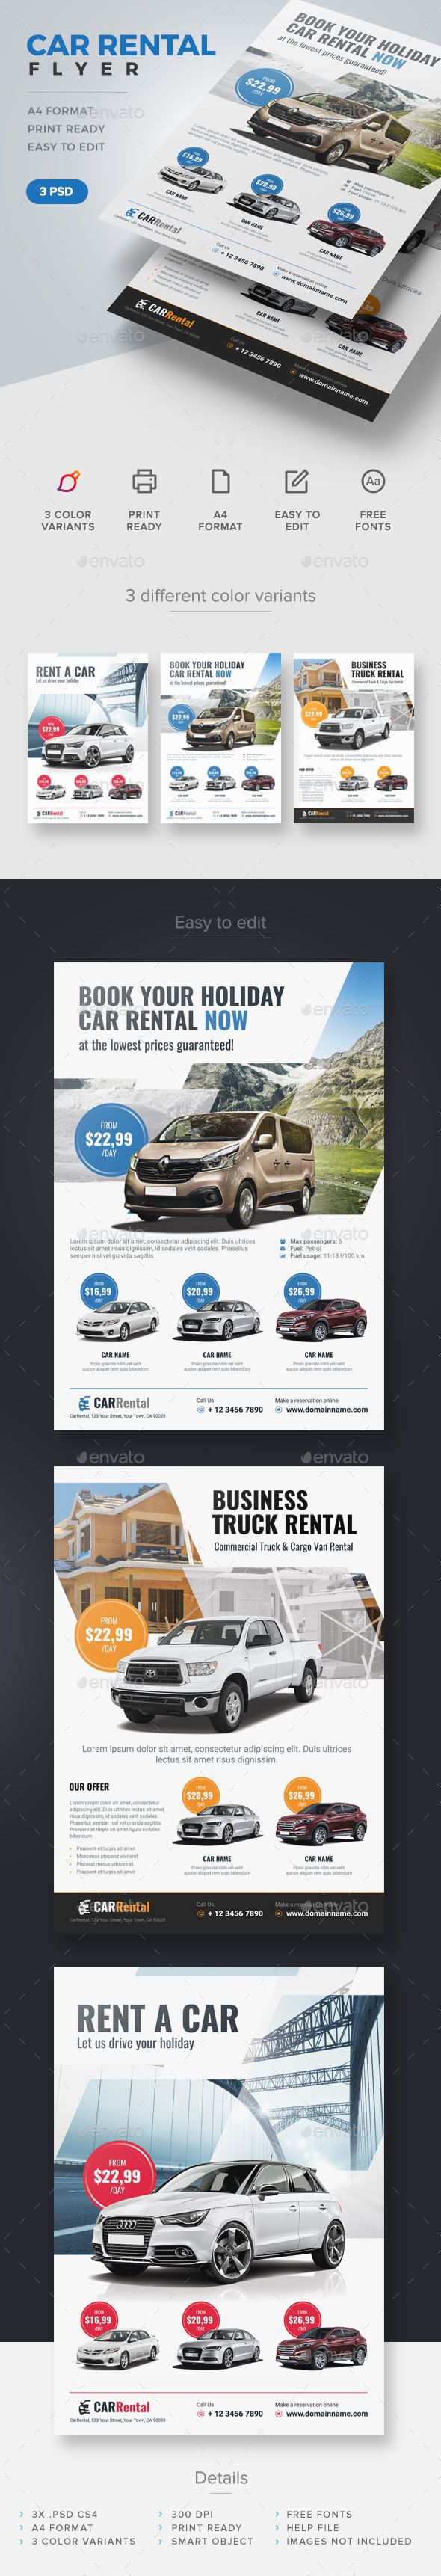 Car rental flyer